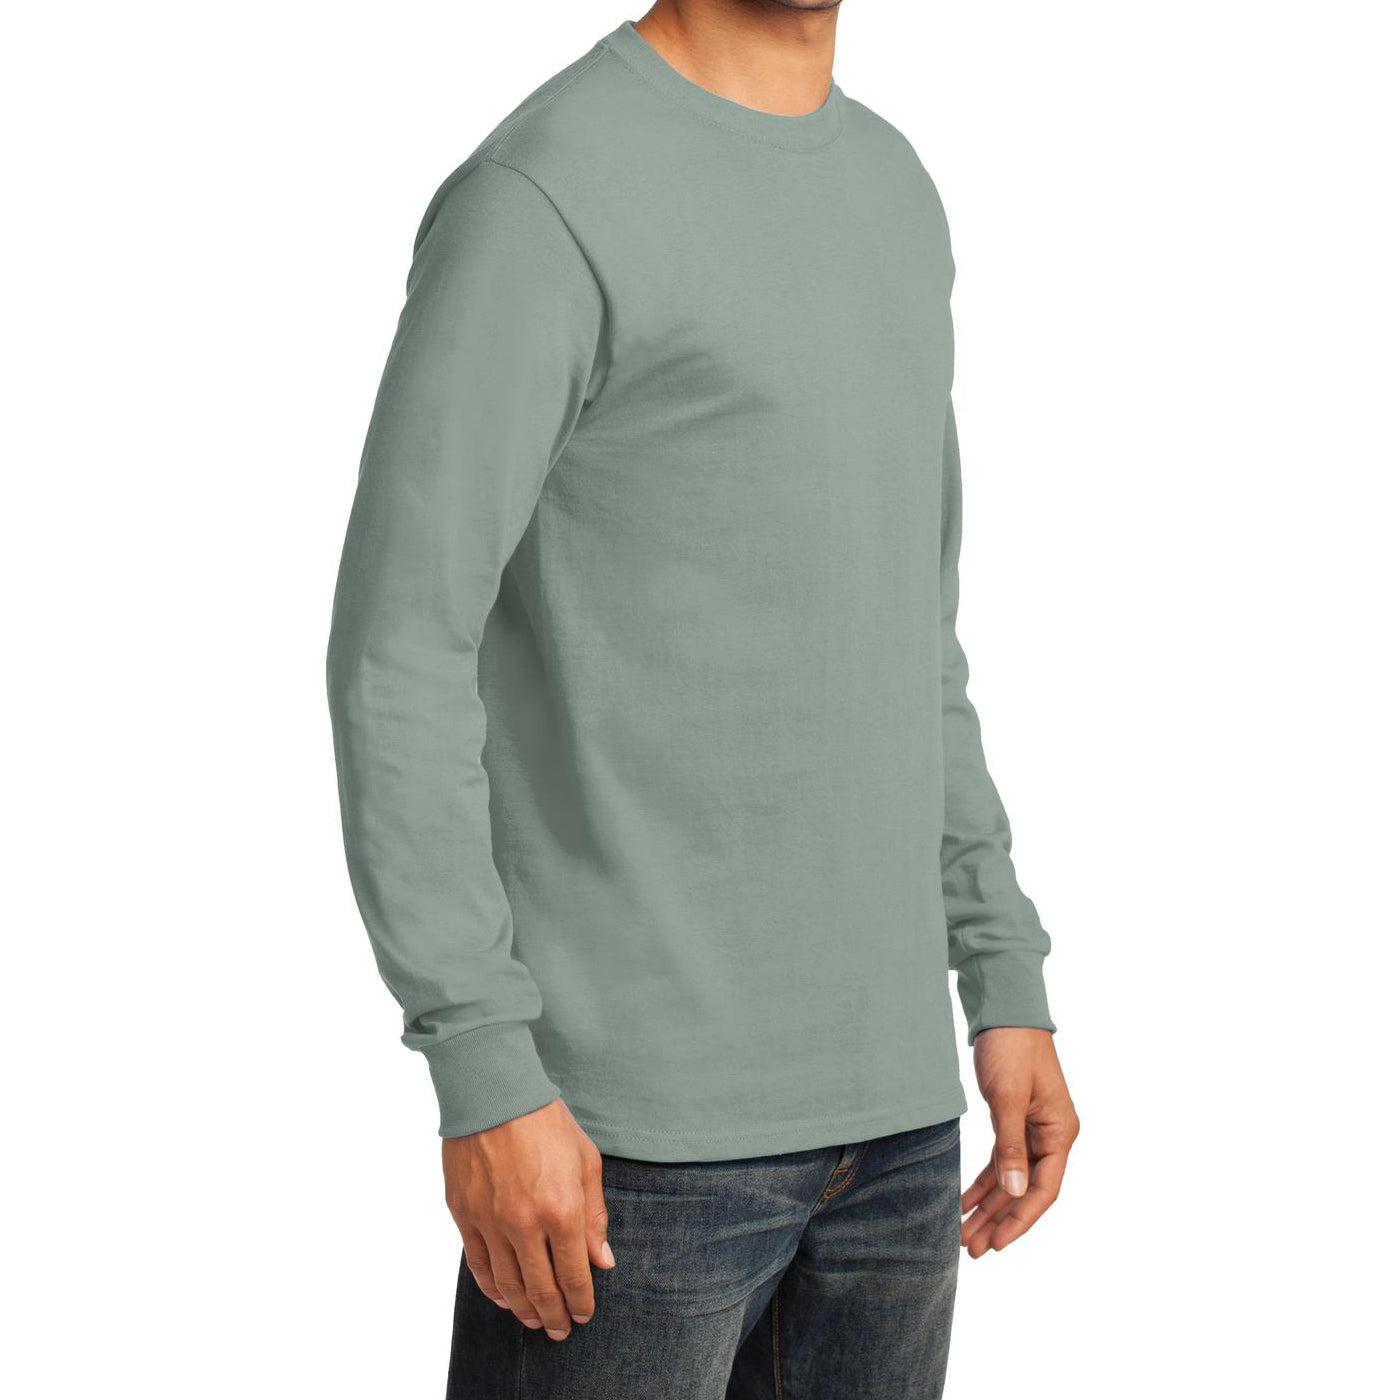 Men's Long Sleeve Essential Tee - Stonewashed Green - Side